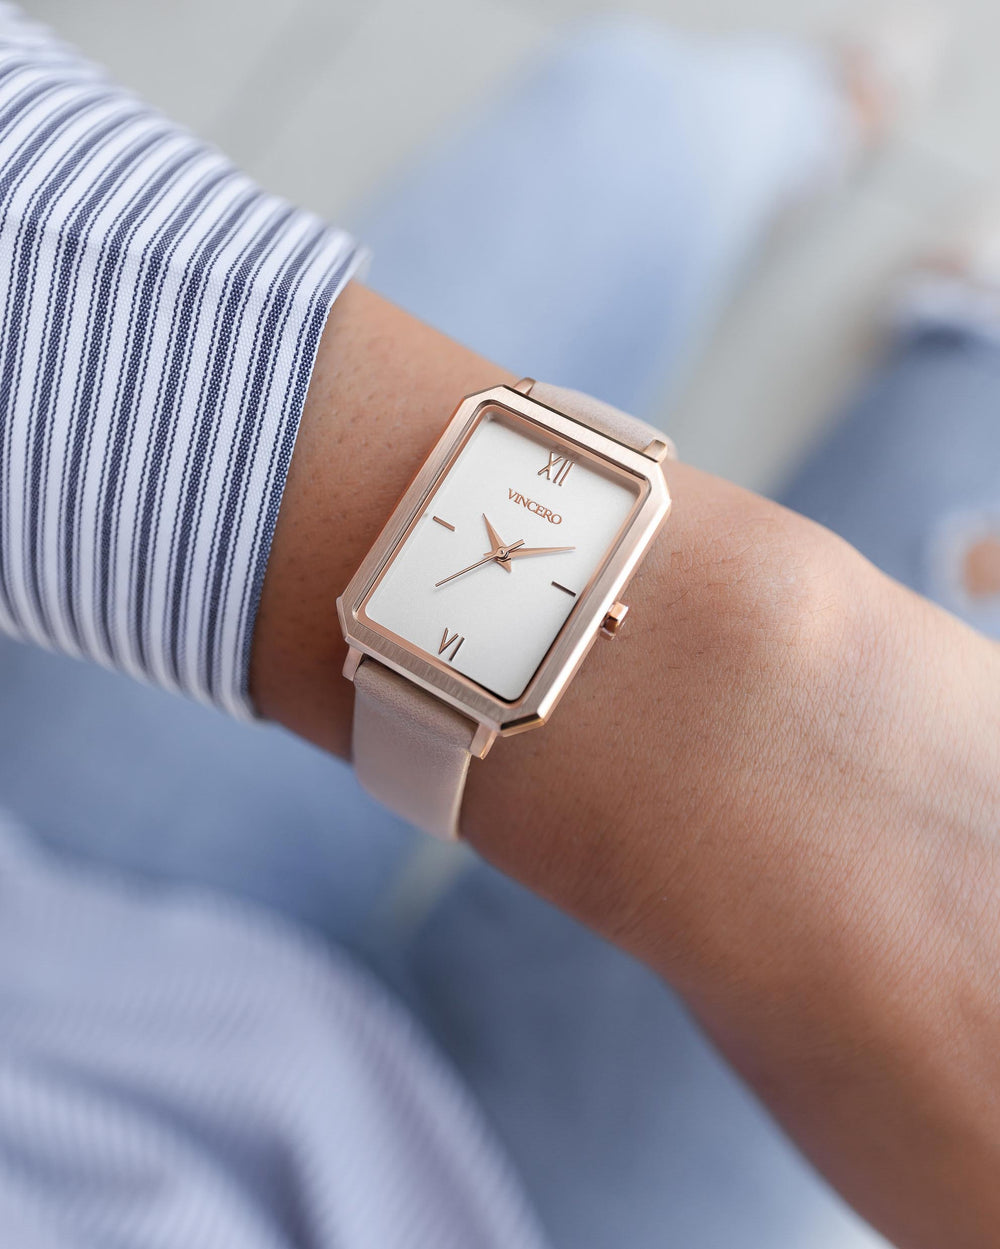 Women's Luxury Ava Watch Brushed Rose Gold Stainless Steel Top Grain Italian Leather Strap Matte White Watch Face